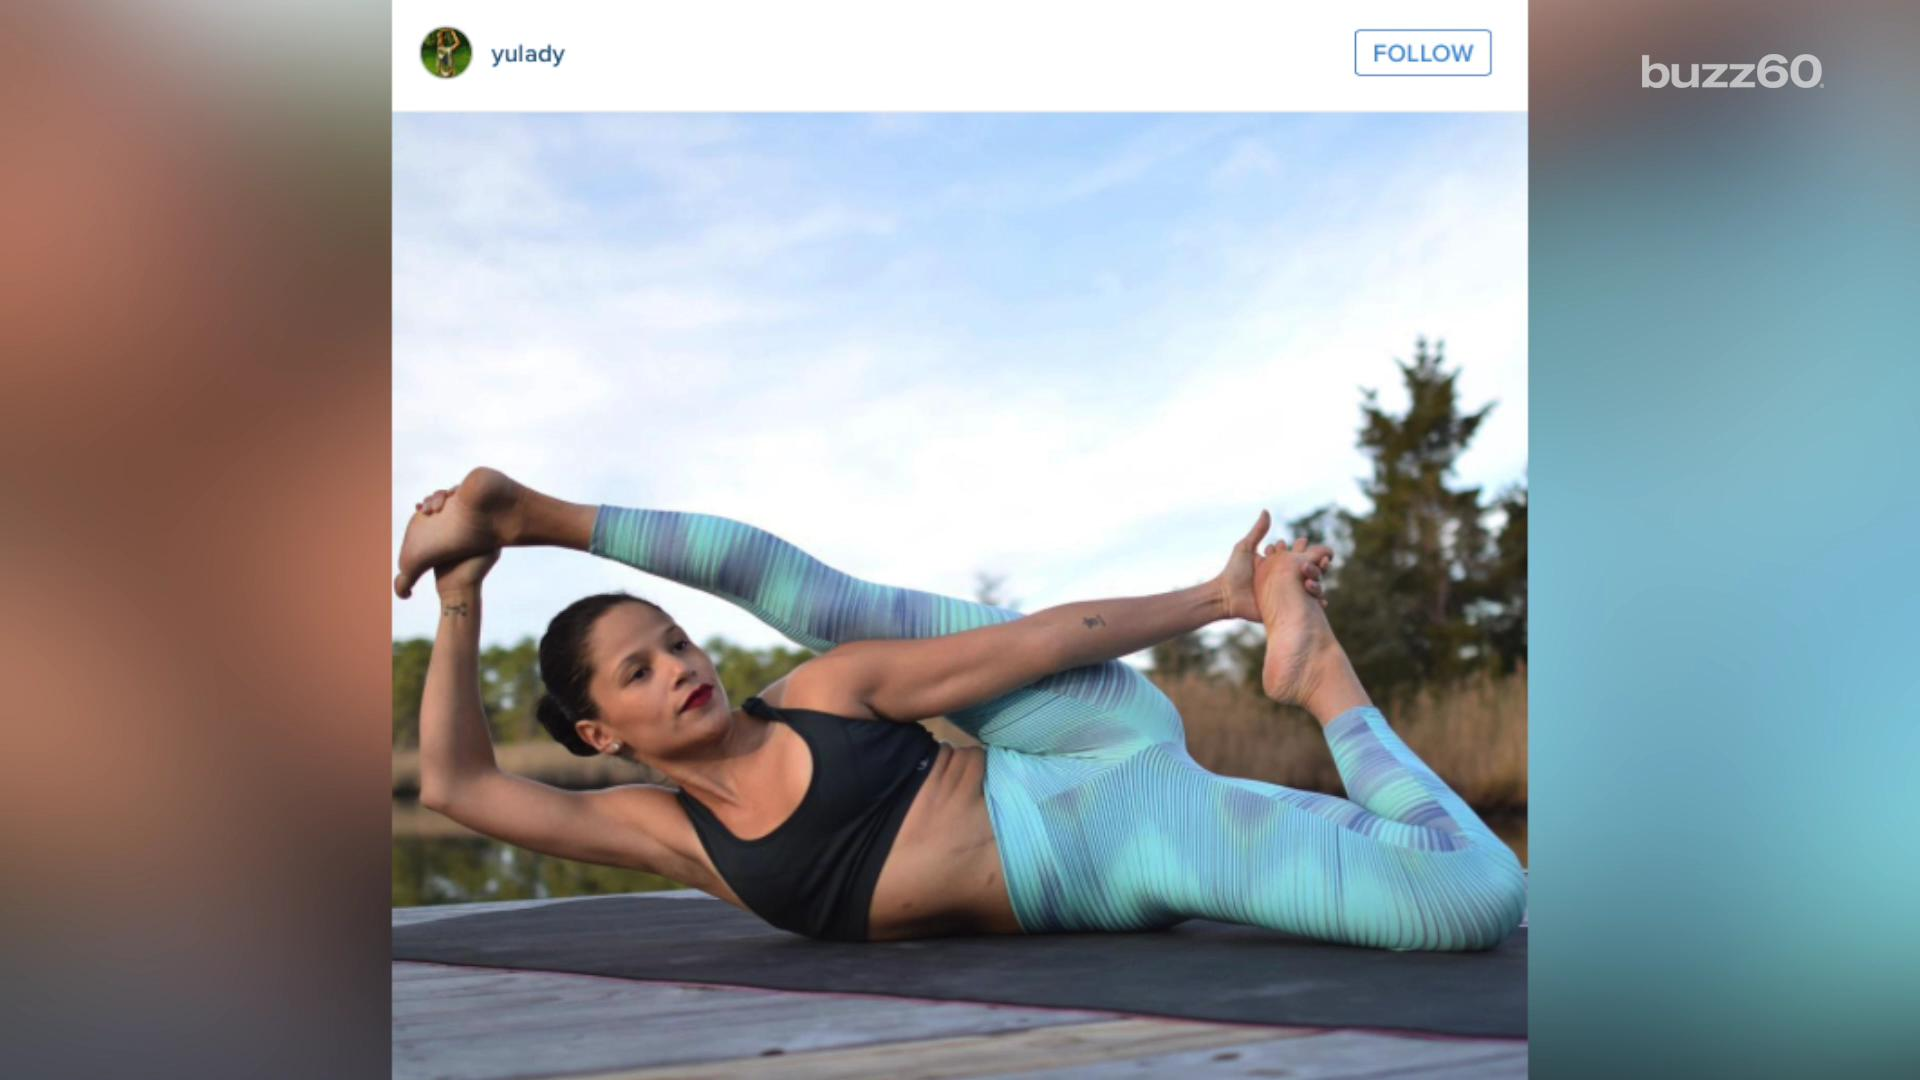 Yoga Instagram Accounts to Follow for Inspiration in the New Year